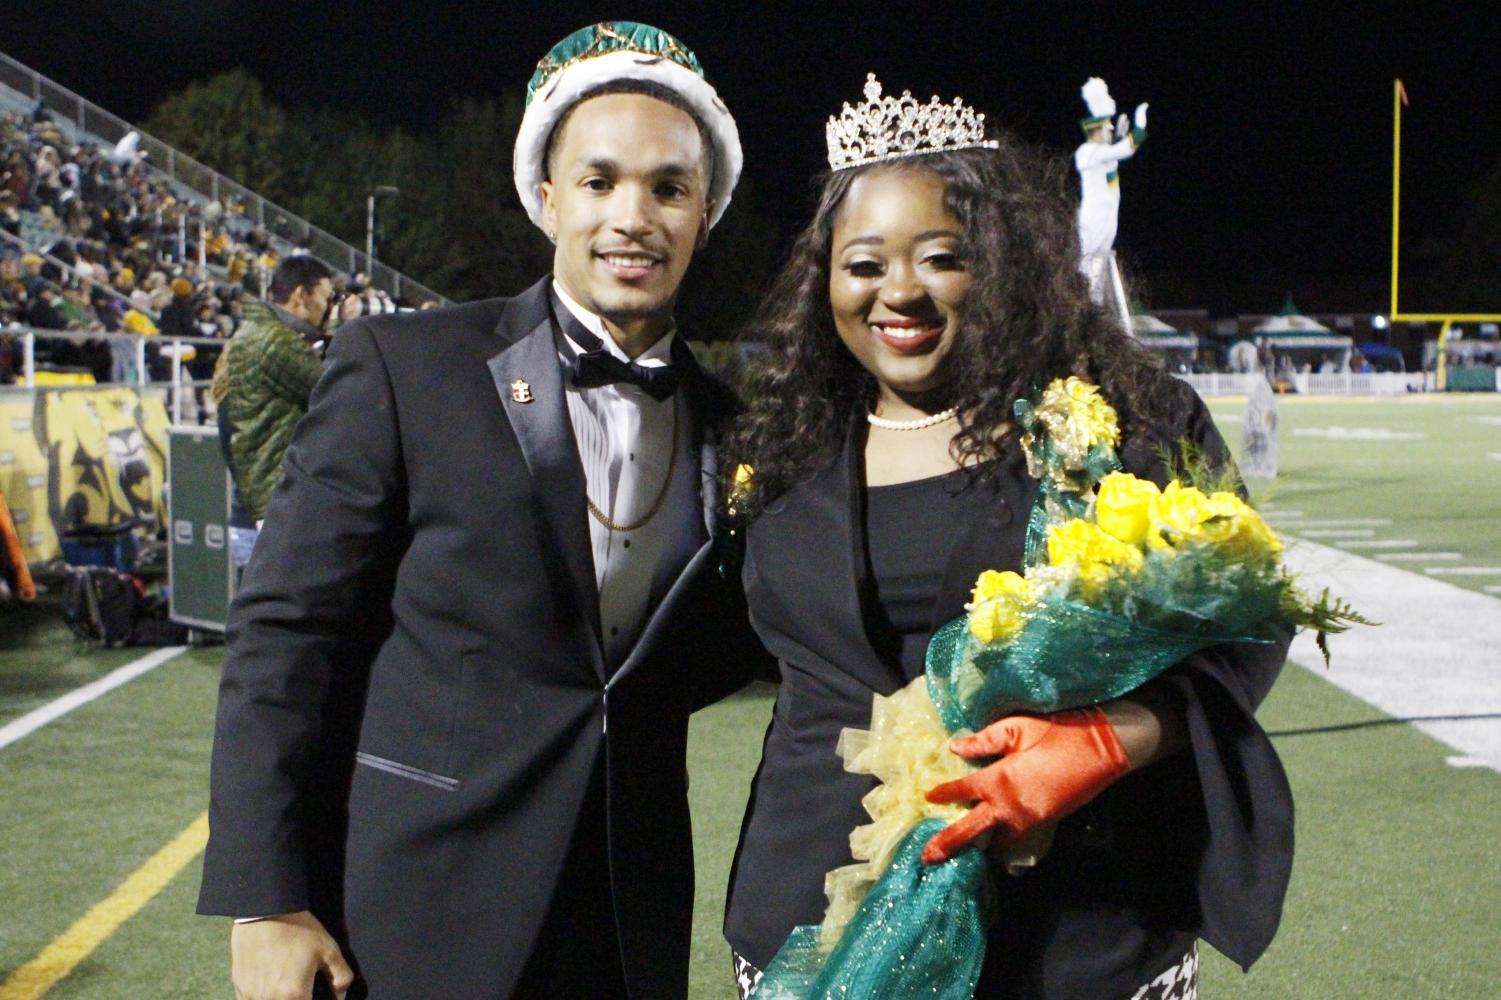 The new Homecoming Court will be announced right after the election that ends on Thursday, Sept. 13 at 4:30 p.m. The elected king and queen will replace the previously elected Bryce Carpenter and Mattie Hawkins. Of the elected court, the Homecoming king and queen will be announced during halftime of the Homecoming game.